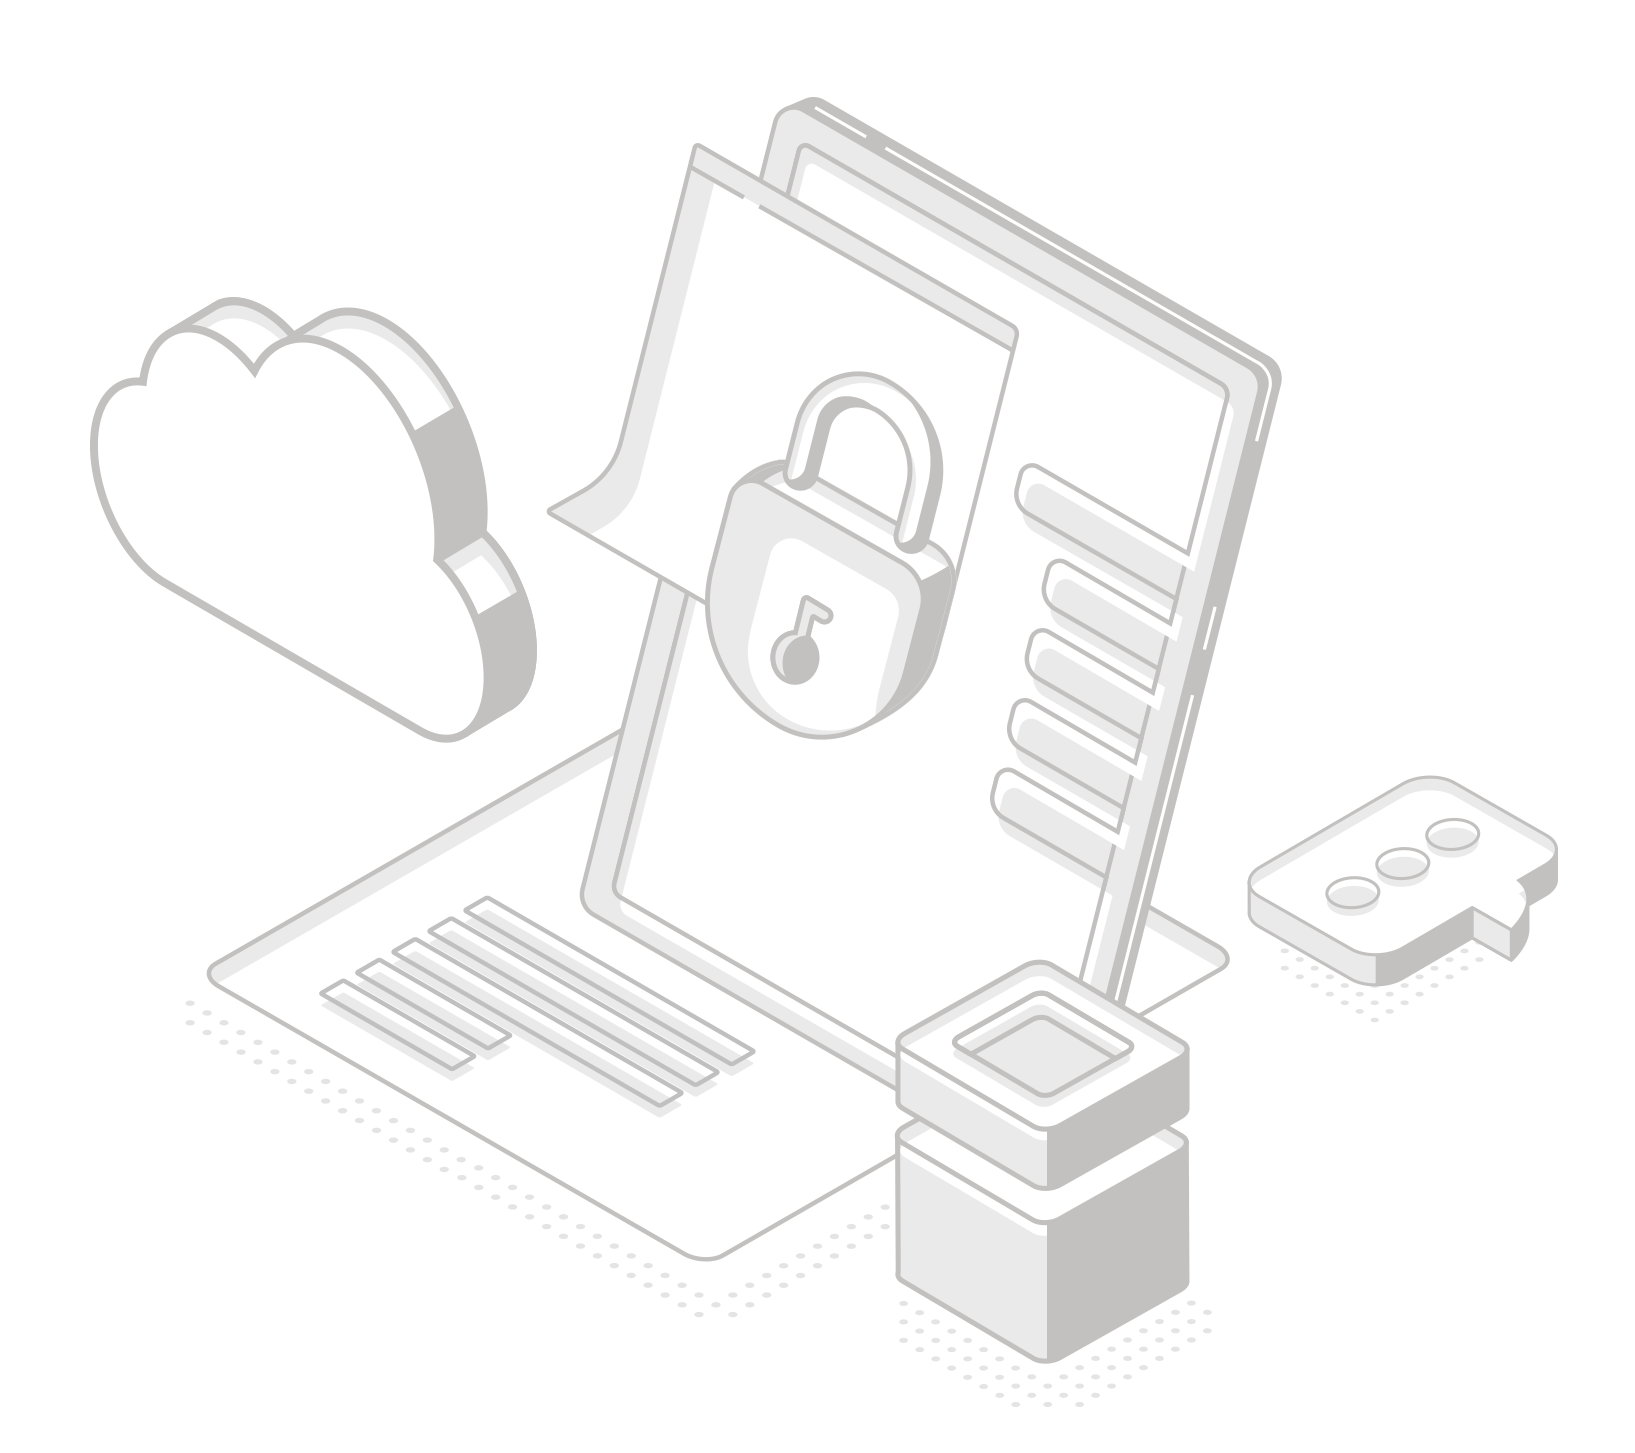 https://earn.re/wp-content/uploads/2021/09/enhanced-security_01.png